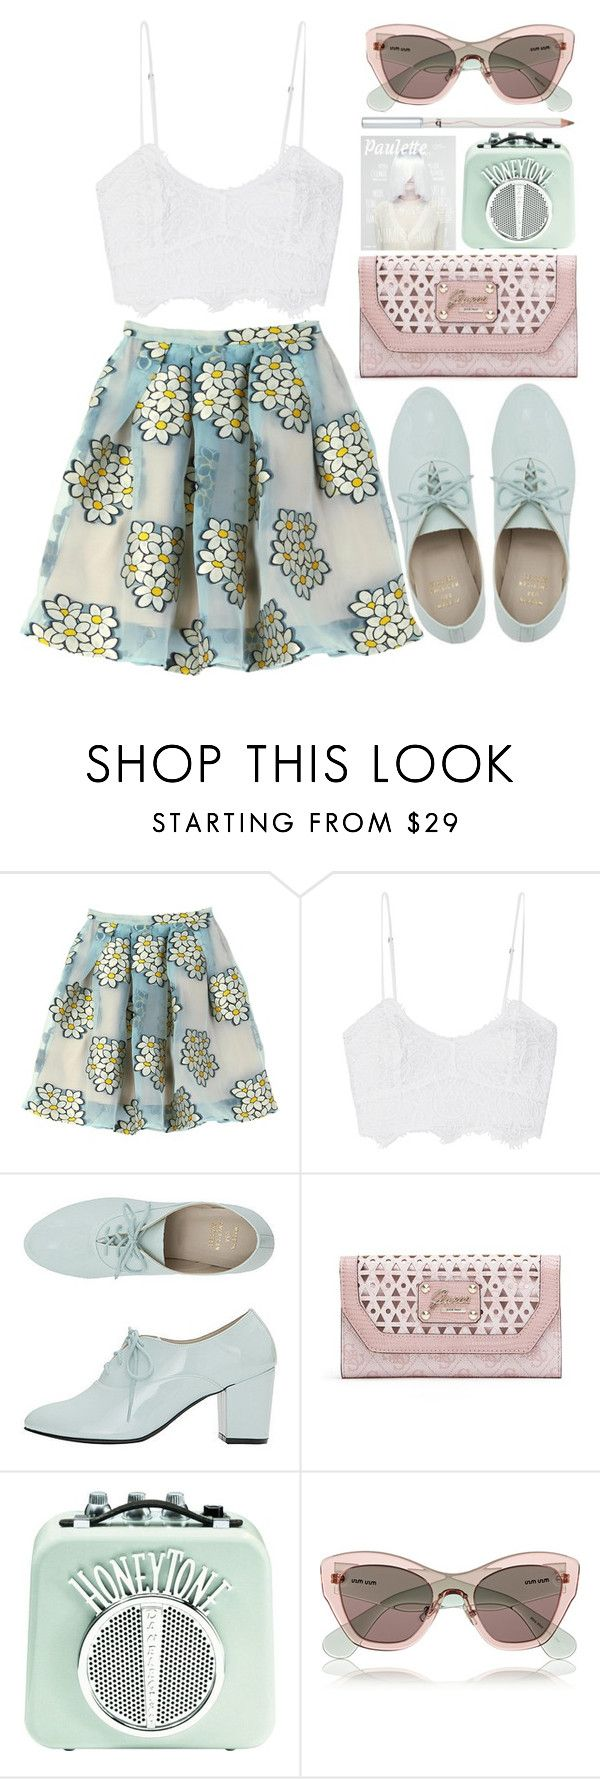 """Like ever."" by bellacharlie ❤ liked on Polyvore featuring RED Valentino, Miguelina, American Apparel, GUESS, Miu Miu, croptop, valentino, pastel, mintgreen and crochet"